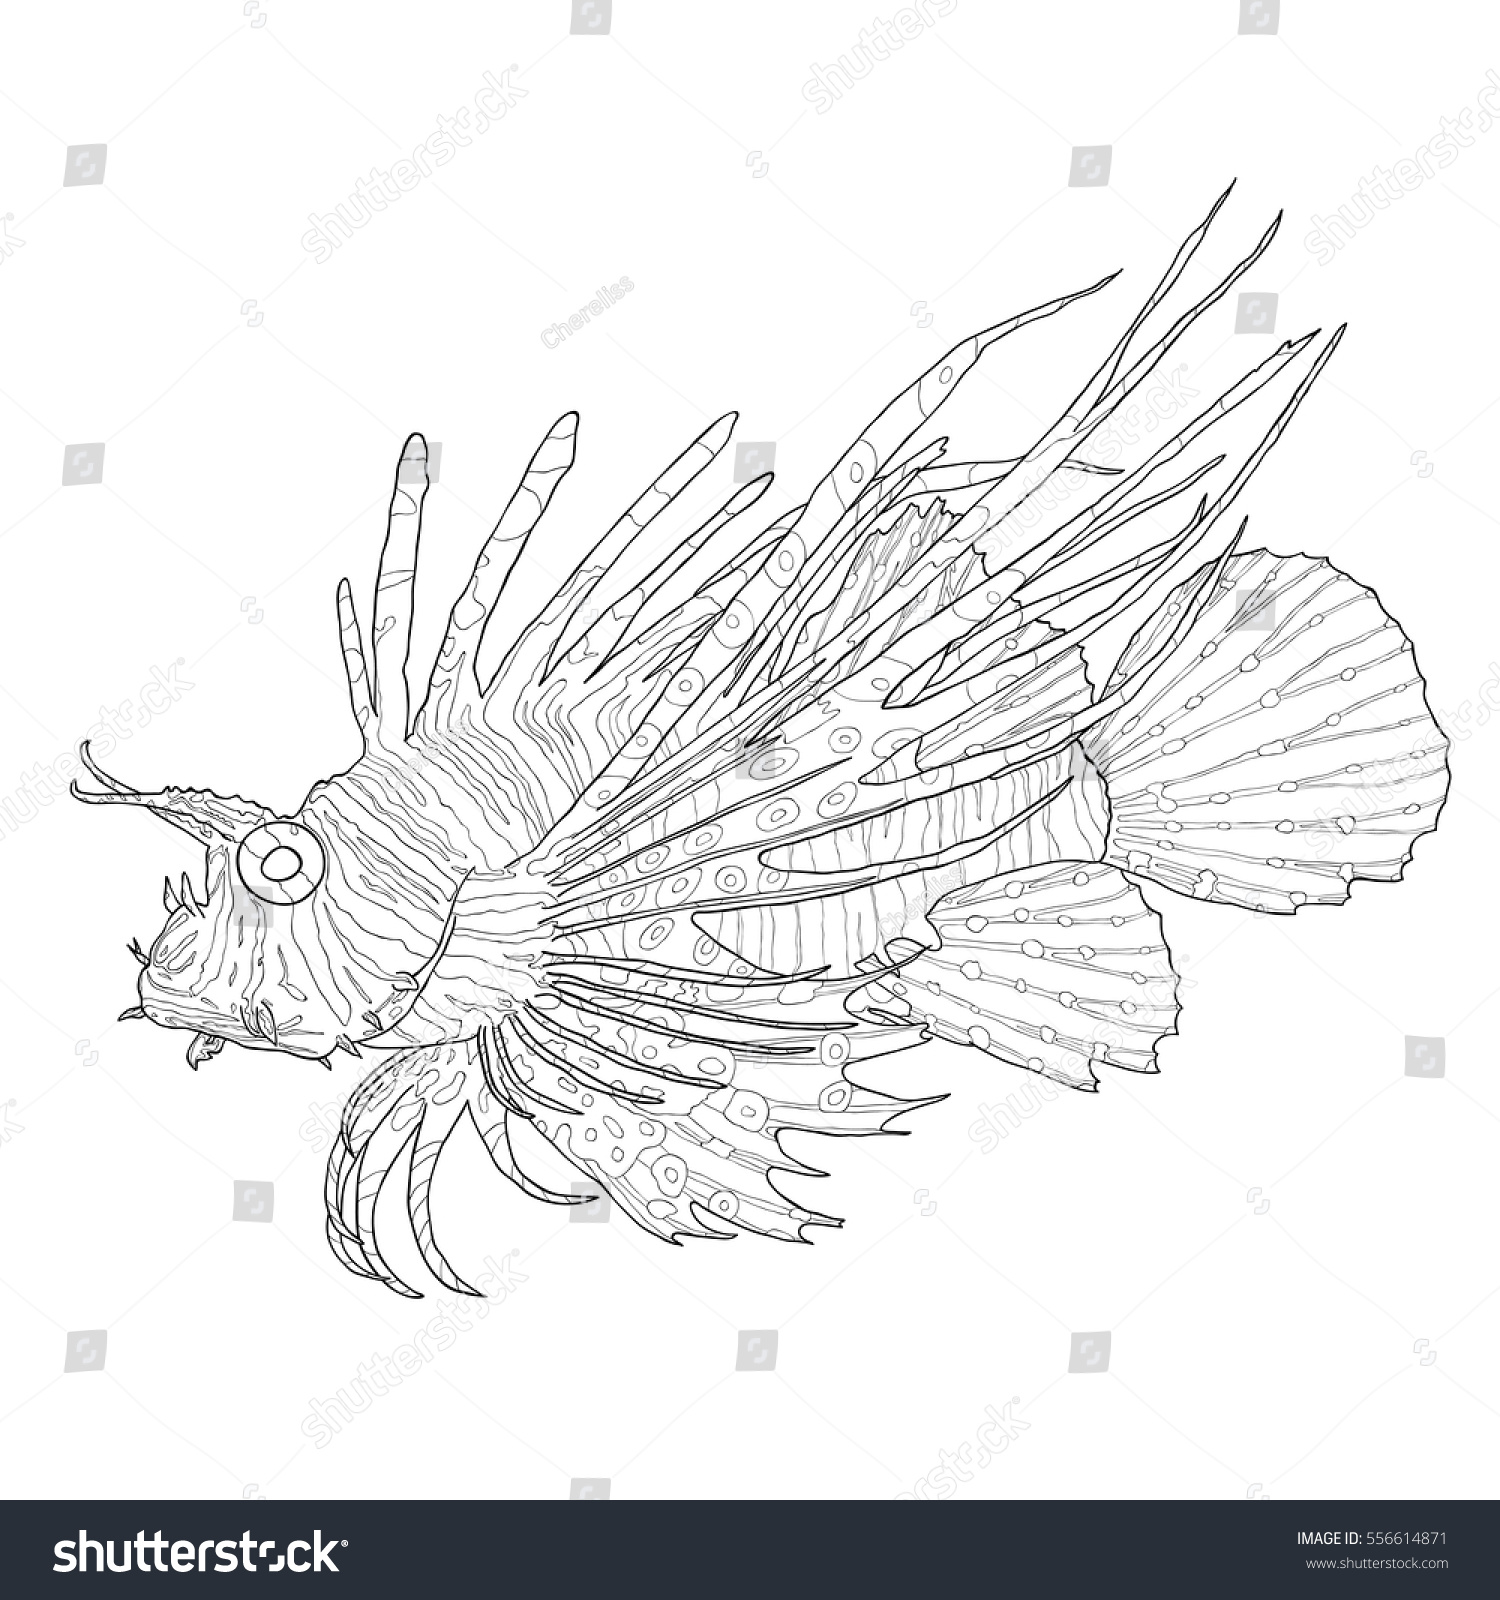 Tropical Fish Scorpion Fish Red Lionfish Stock Vector (Royalty Free ...